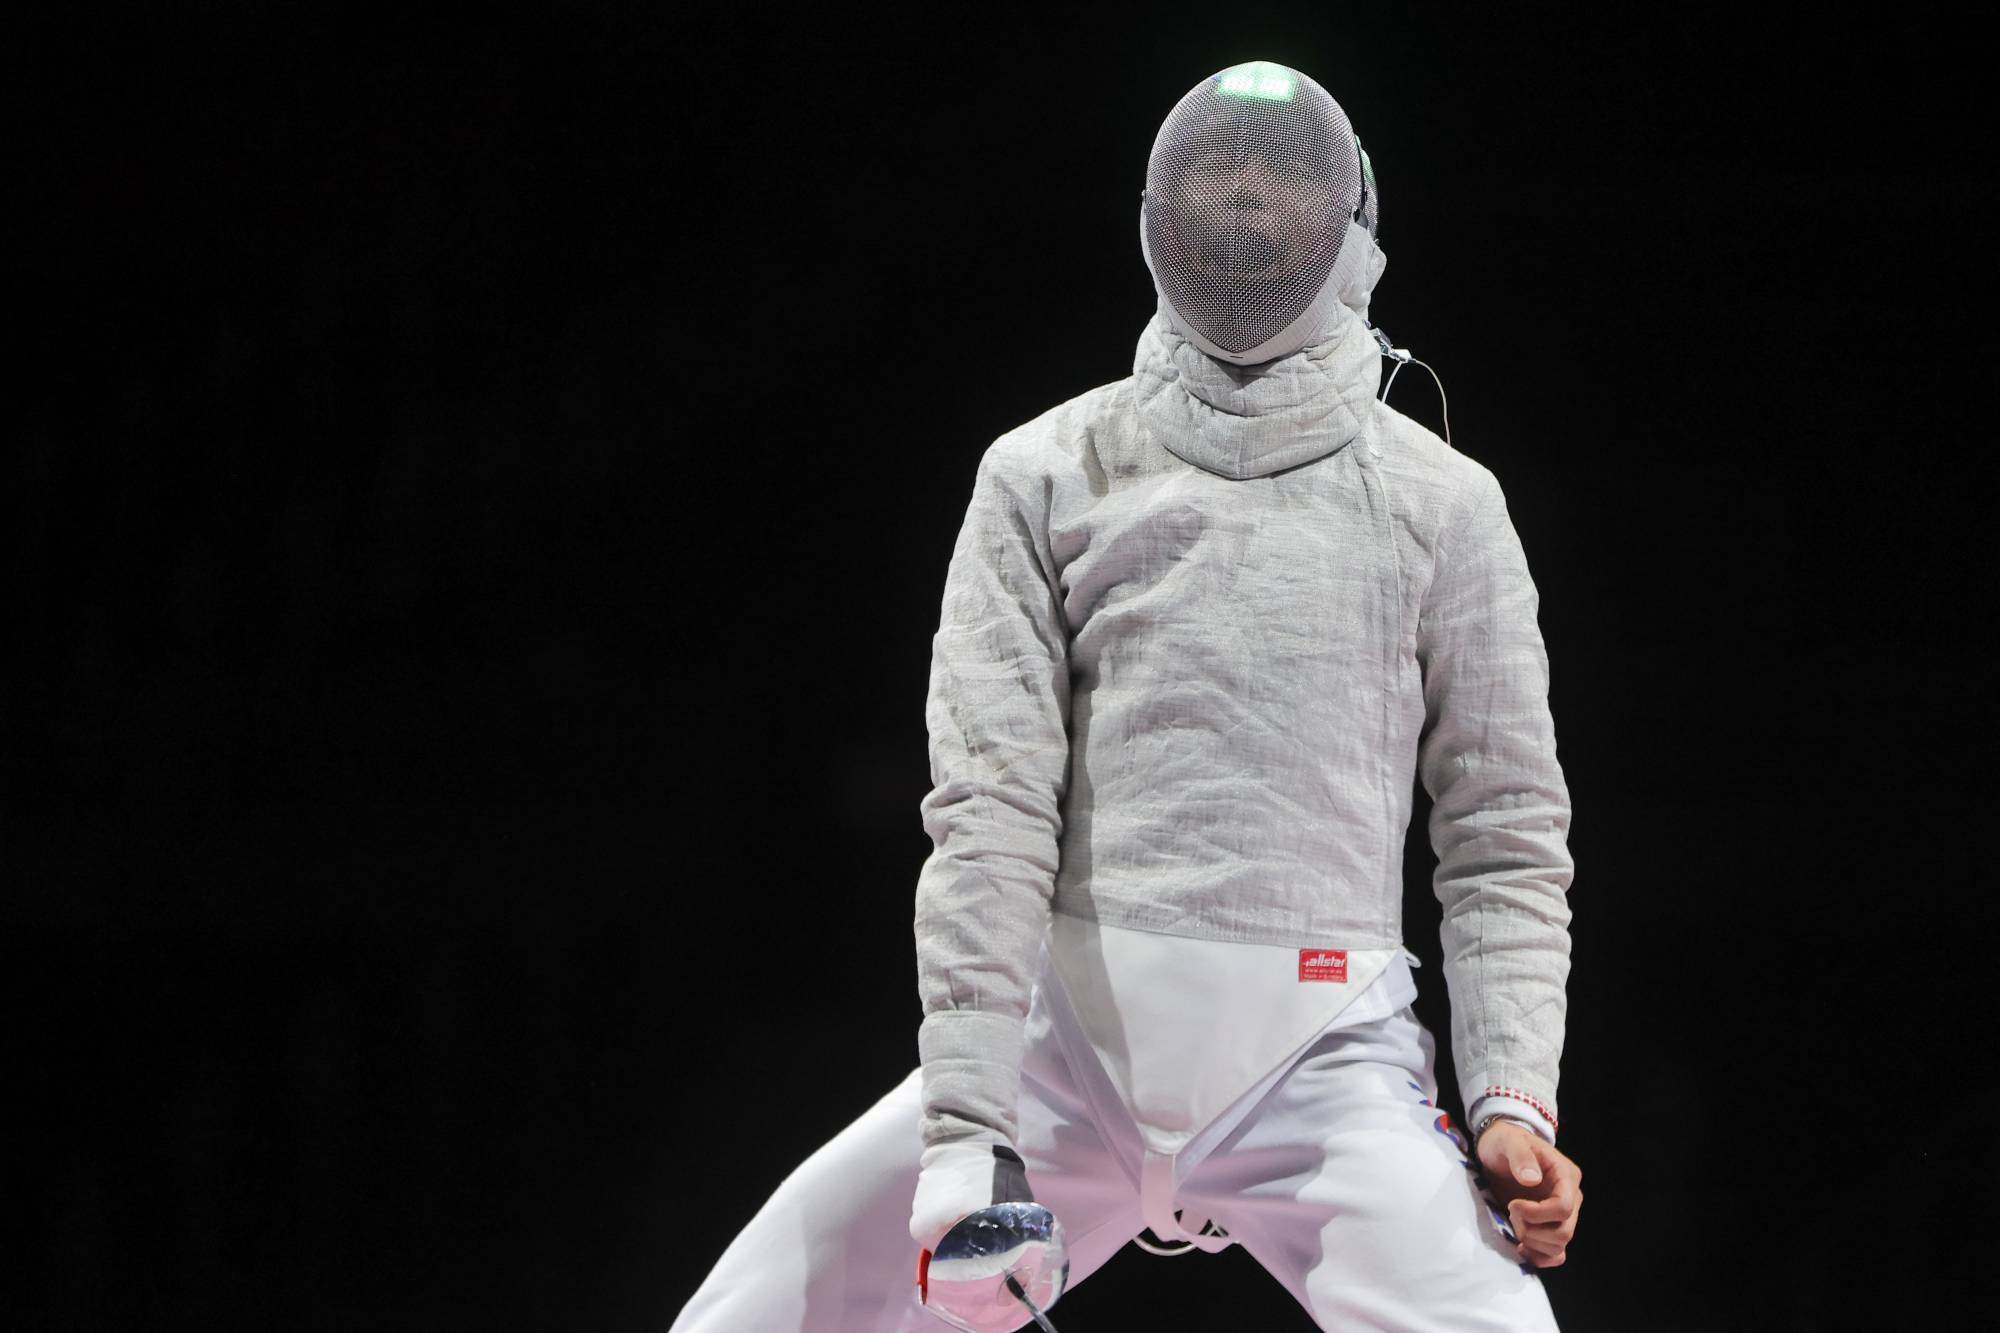 South Korean sabre fencer Oh Sanguk, who was hospitalized for a month with the virus, faded in his quarterfinal against Georgian Sandro Bazadze, eventually losing 15-13. | REUTERS